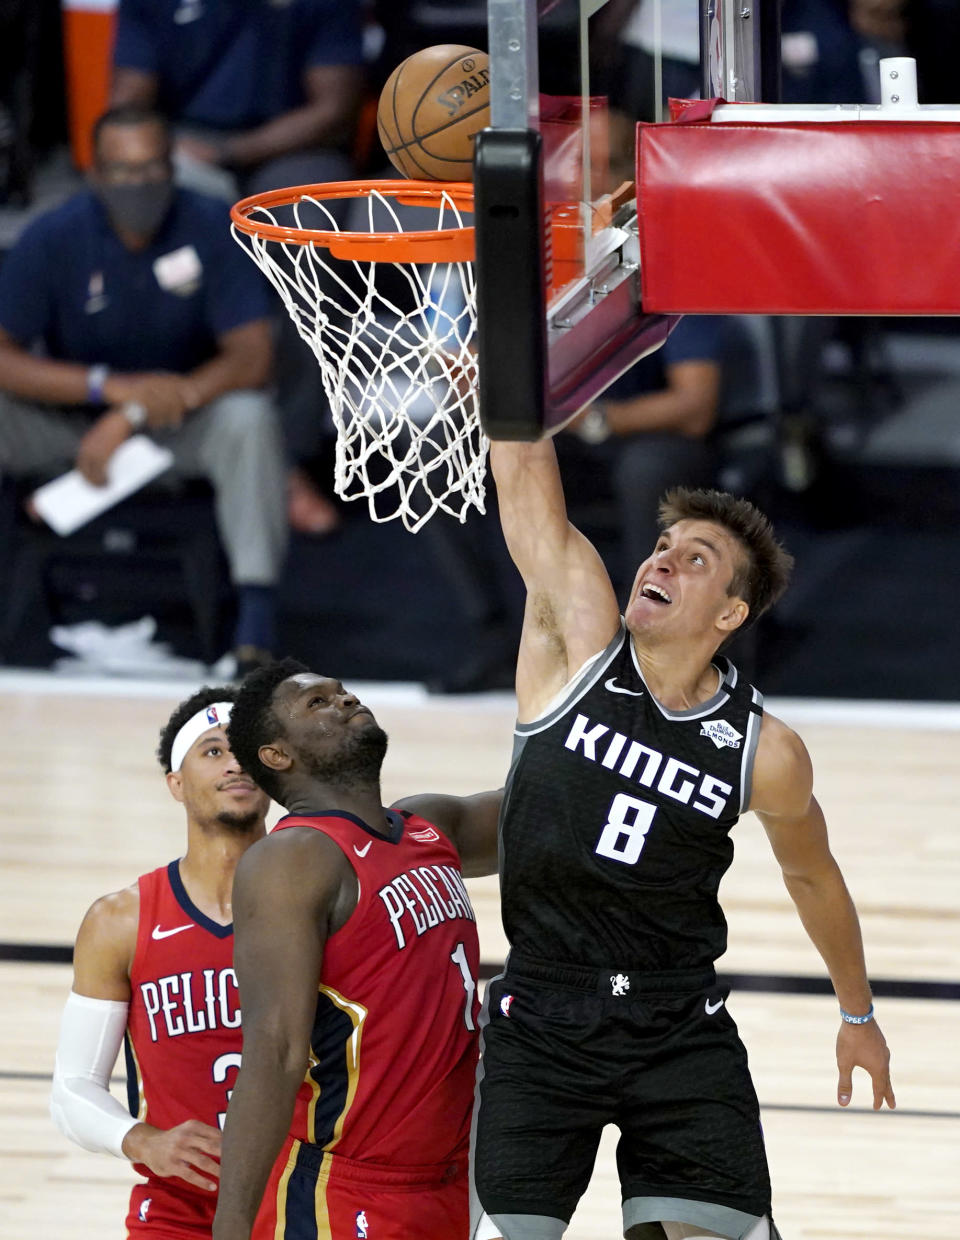 Sacramento Kings' Bogdan Bogdanovic (8) goes up for a basket against New Orleans Pelicans' Zion Williamson (1) and Josh Hart (3) during the second half of an NBA basketball game Thursday, Aug. 6, 2020 in Lake Buena Vista, Fla. (AP Photo/Ashley Landis, Pool)